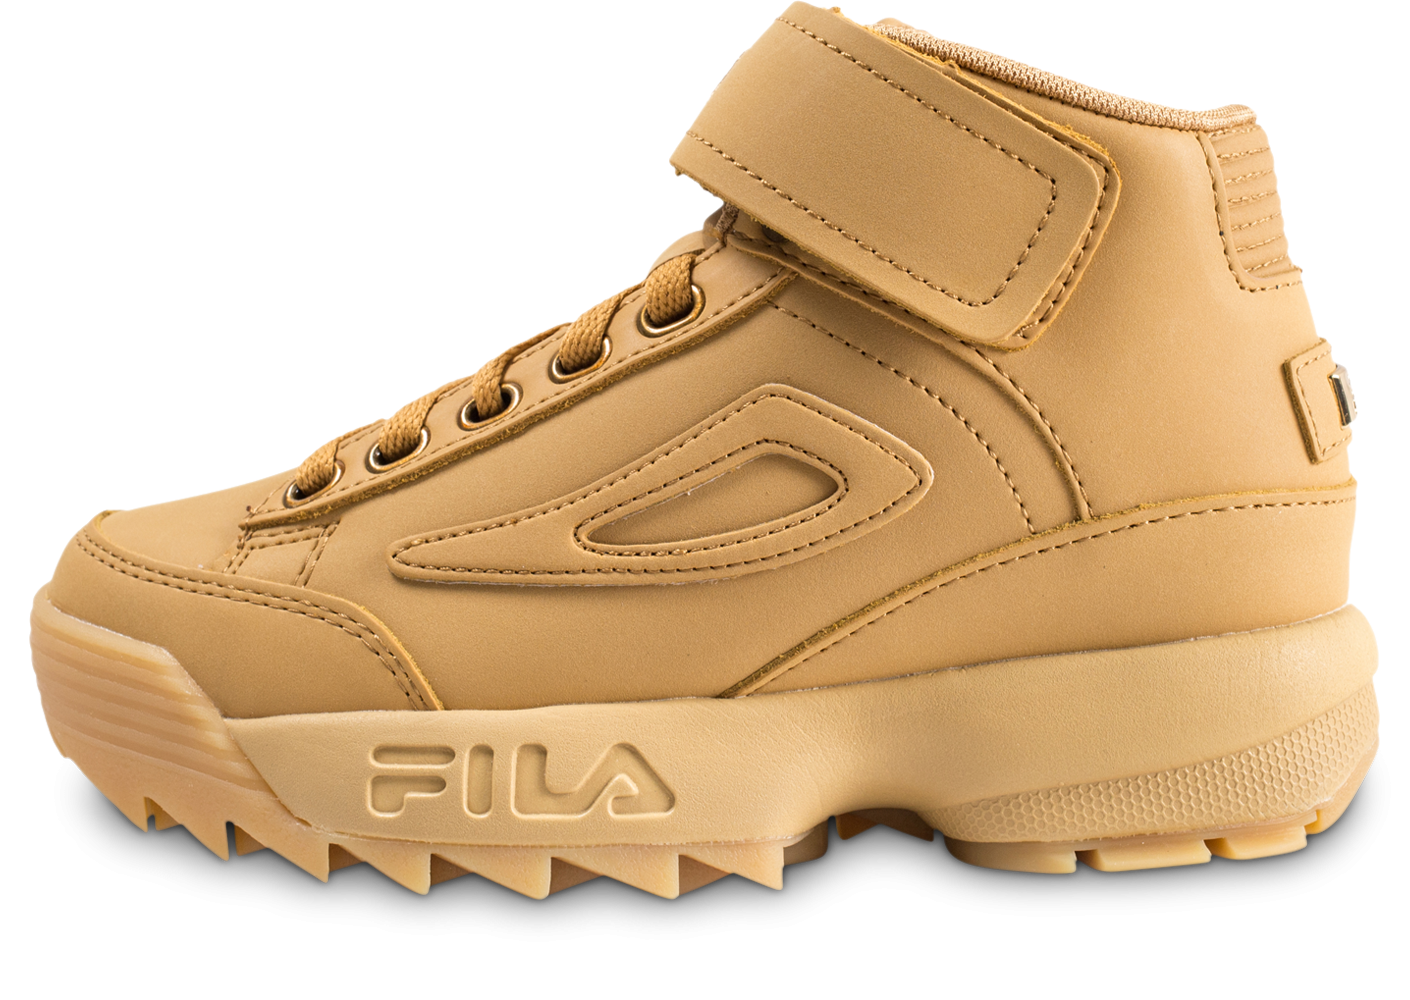 Chaussures Toutes beige Fila les 2 Disruptor femme Clay Low nqwfAwY0